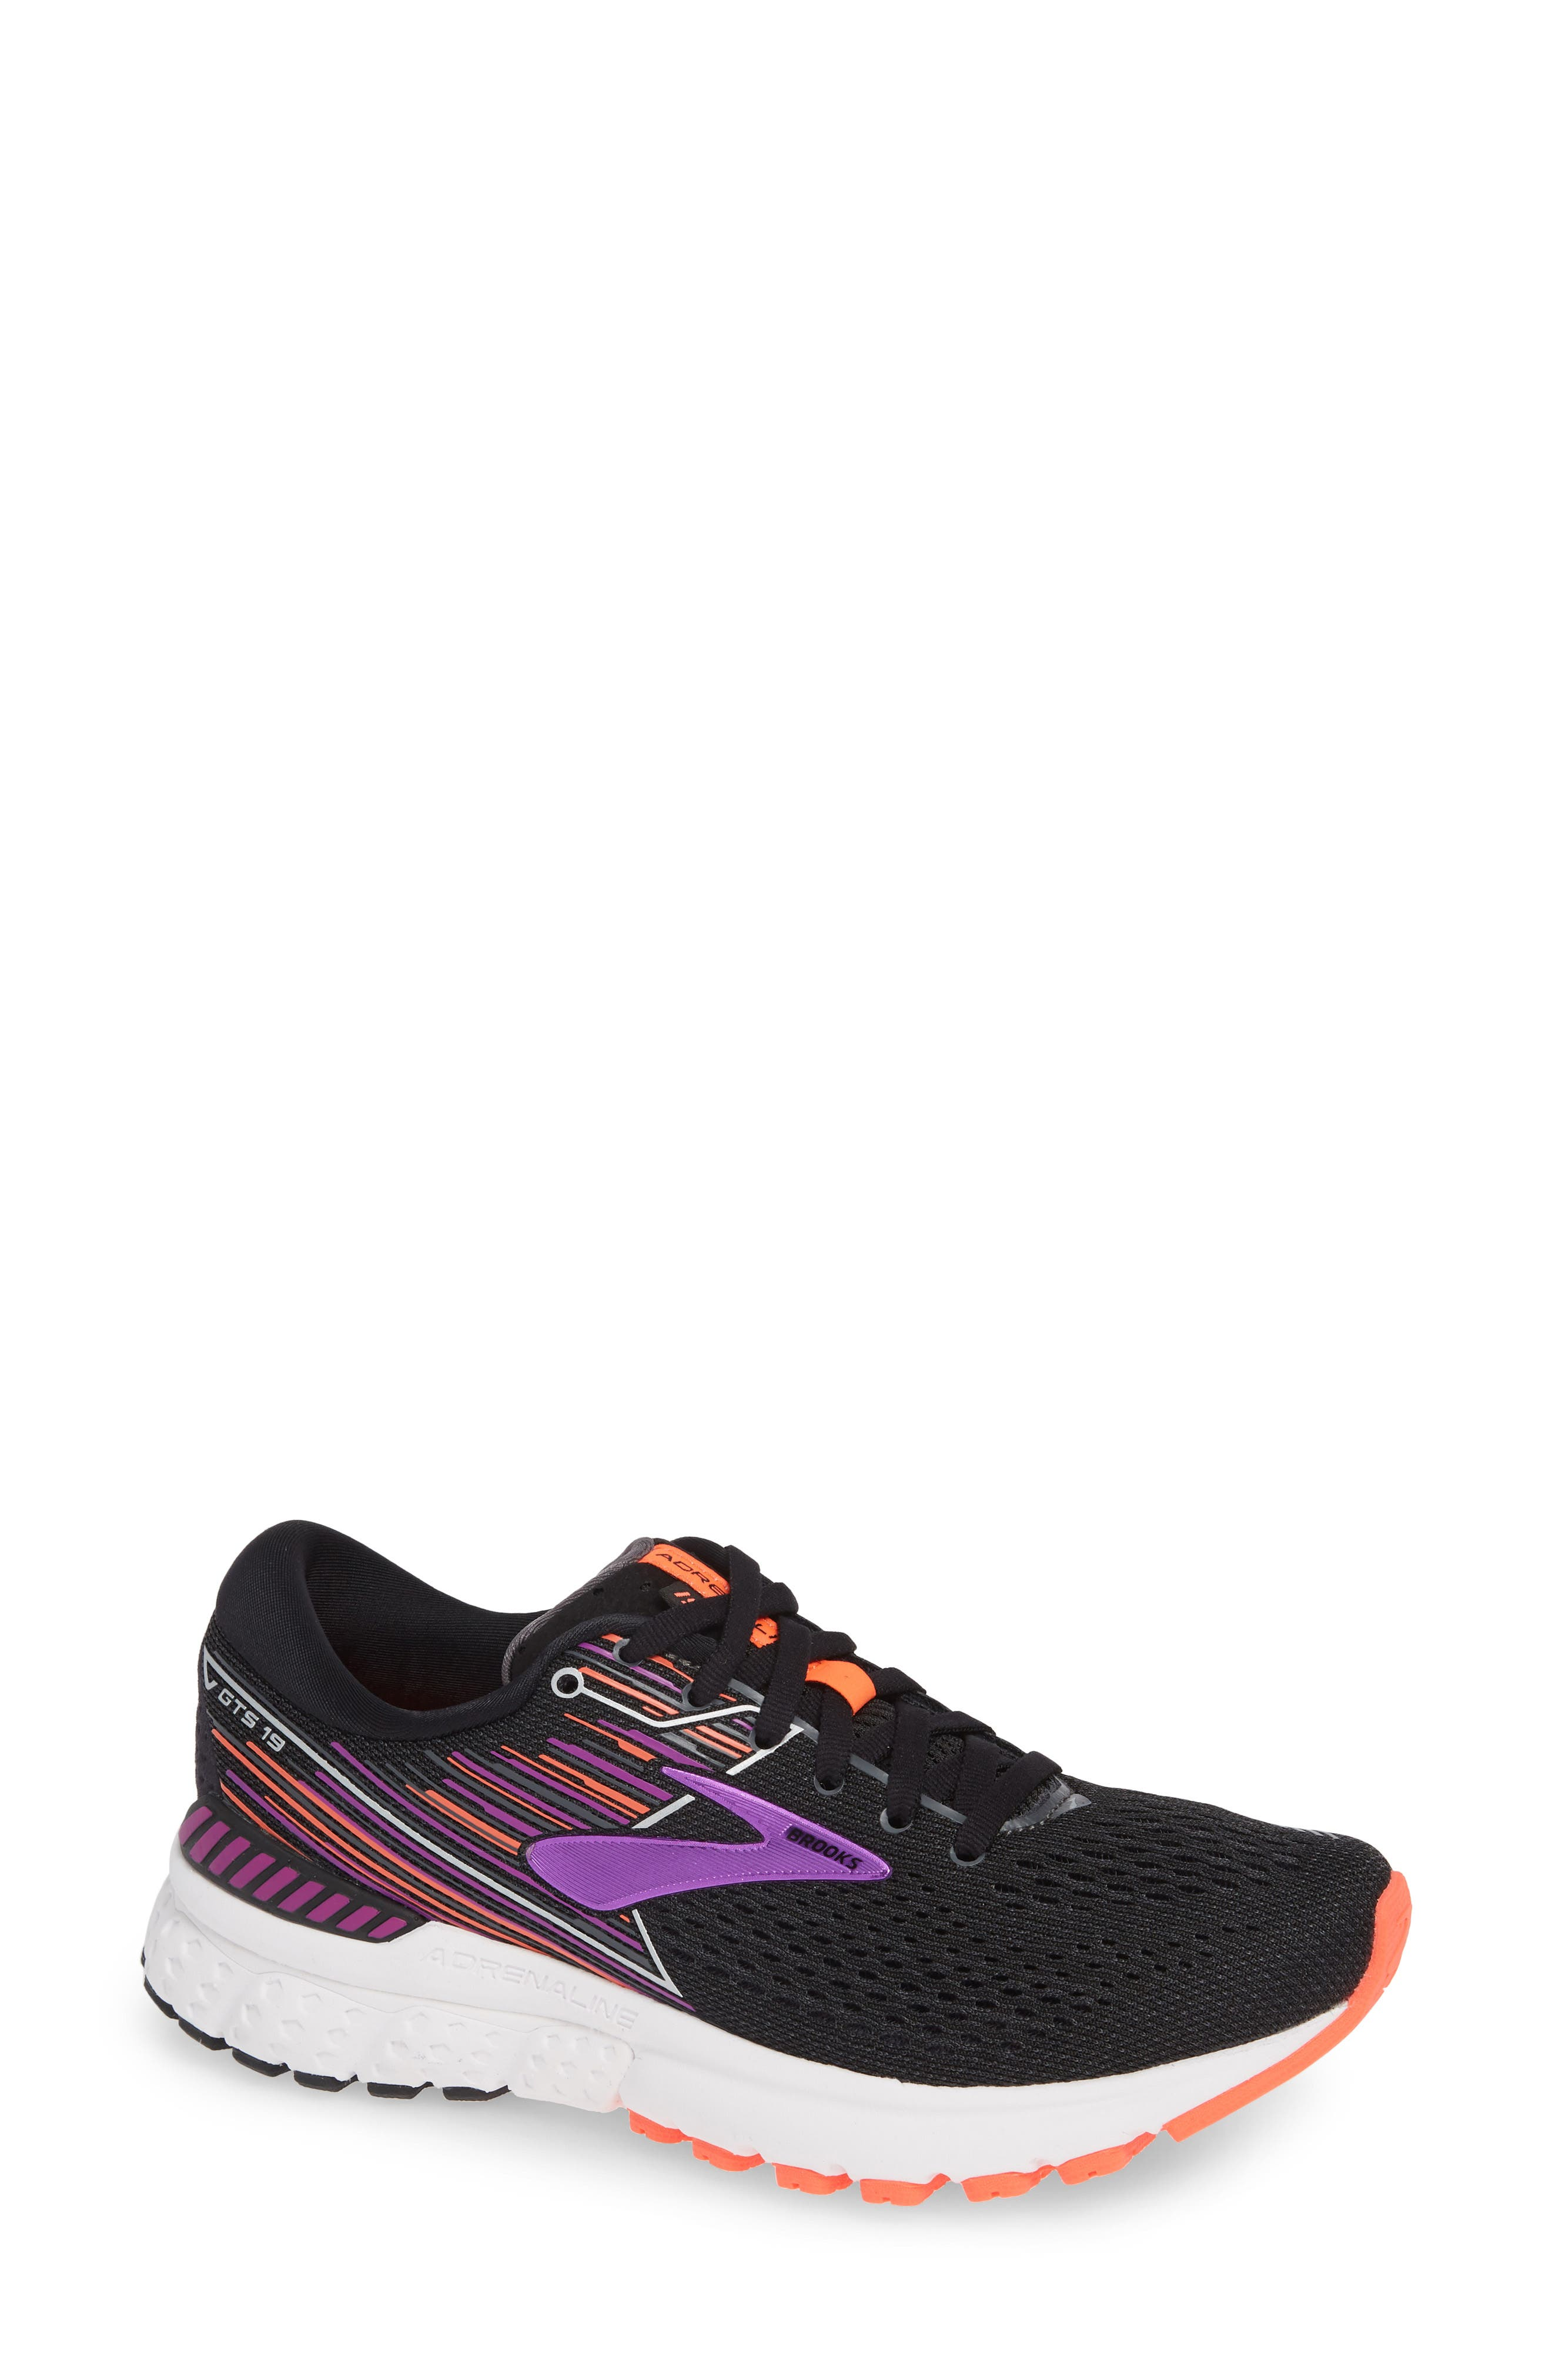 BROOKS, Adrenaline GTS 19 Running Shoe, Main thumbnail 1, color, BLACK/ PURPLE/ CORAL